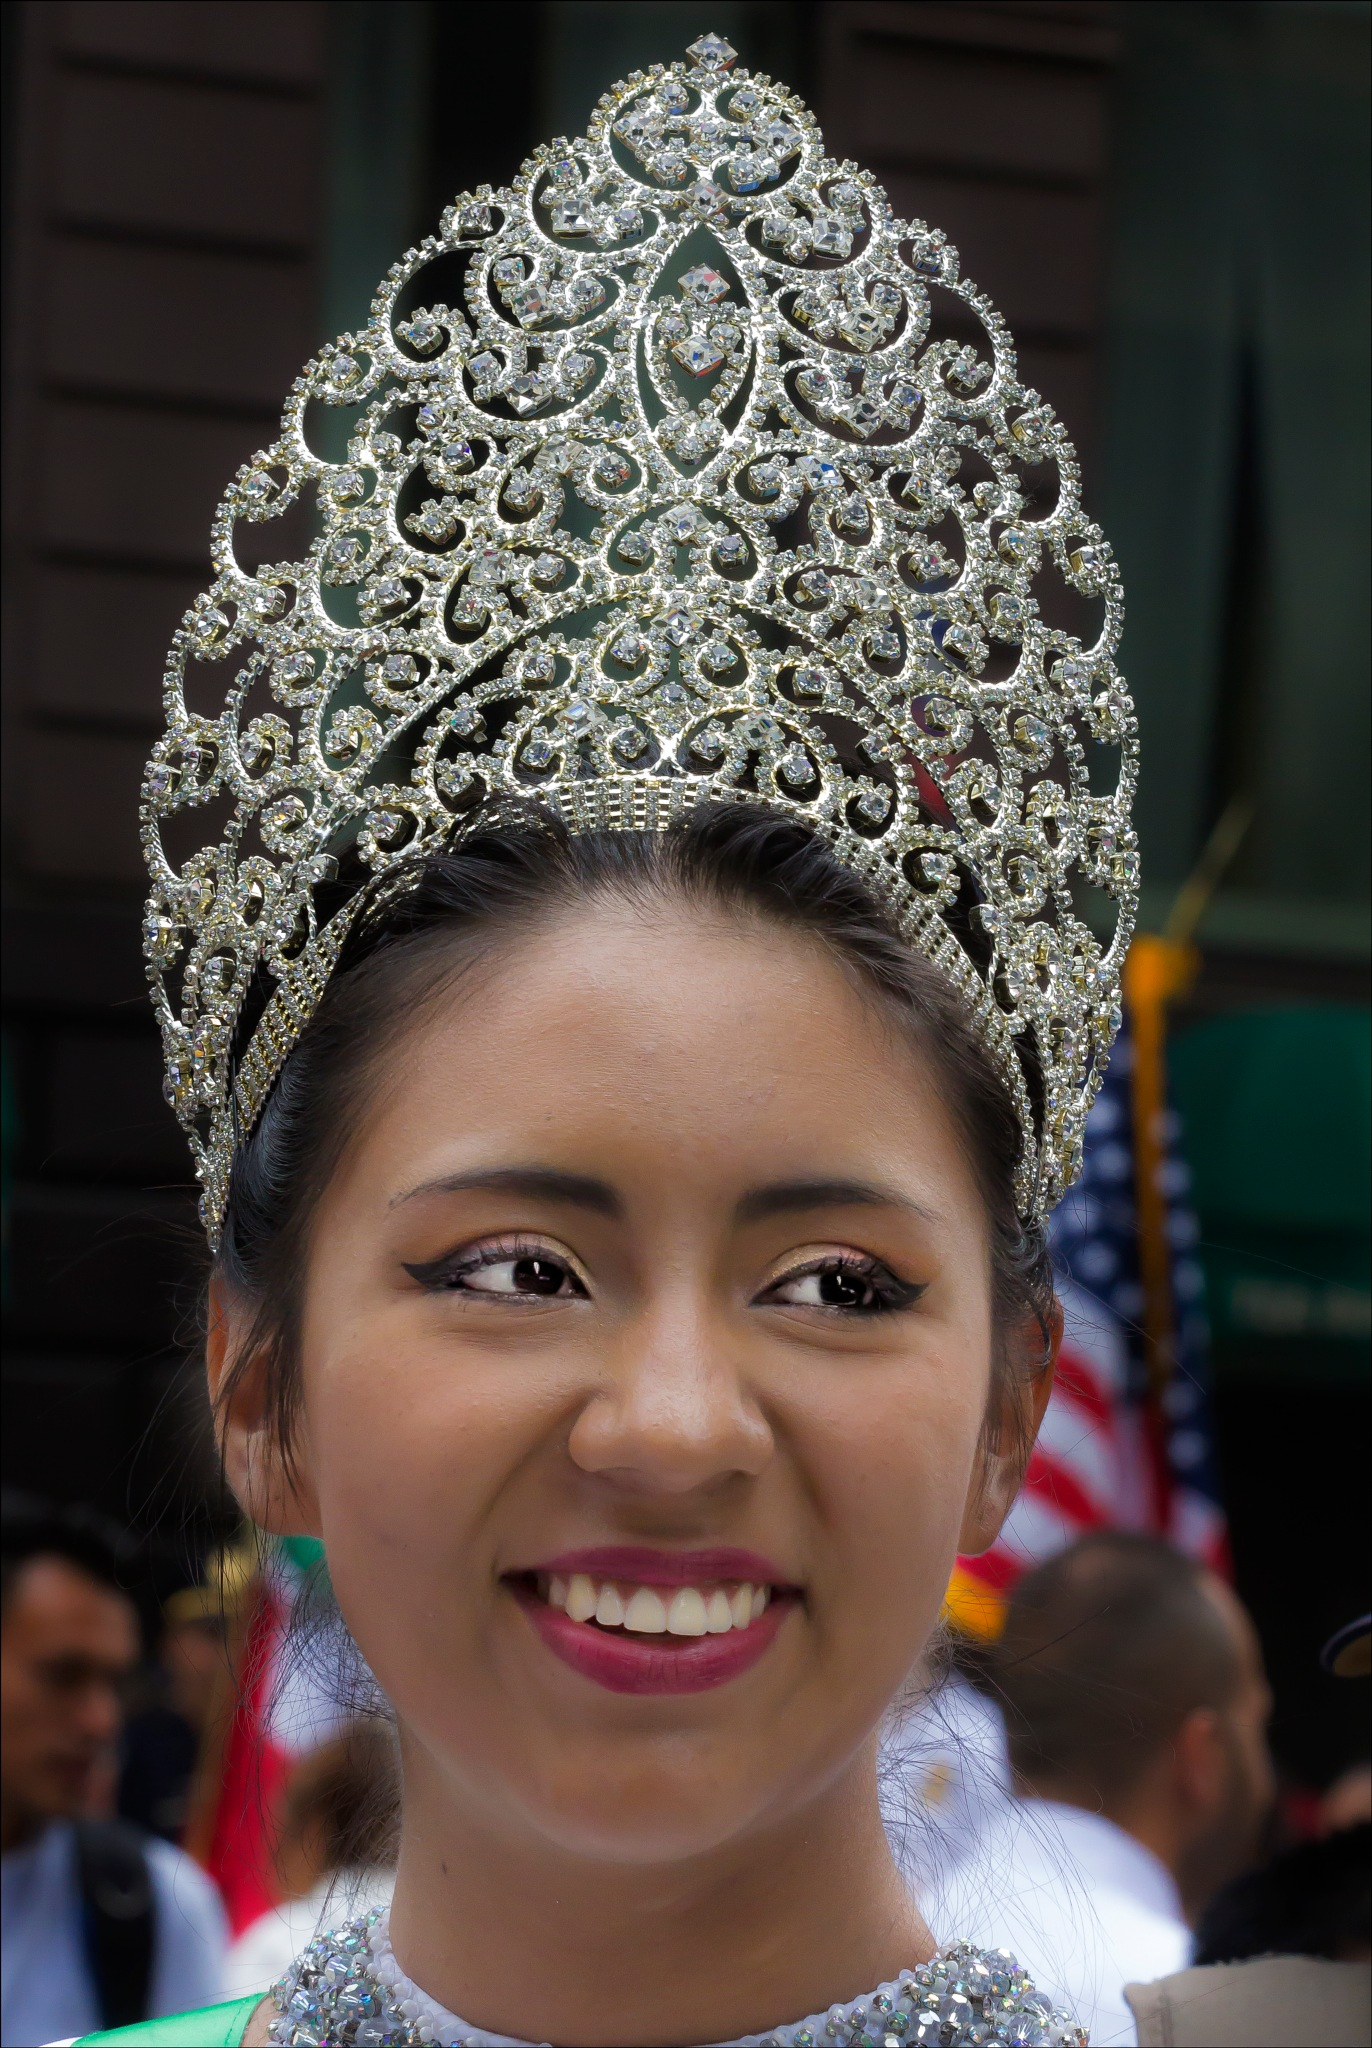 Mexican Day Parade NYC 2016 Beauty Queen by robertullmann